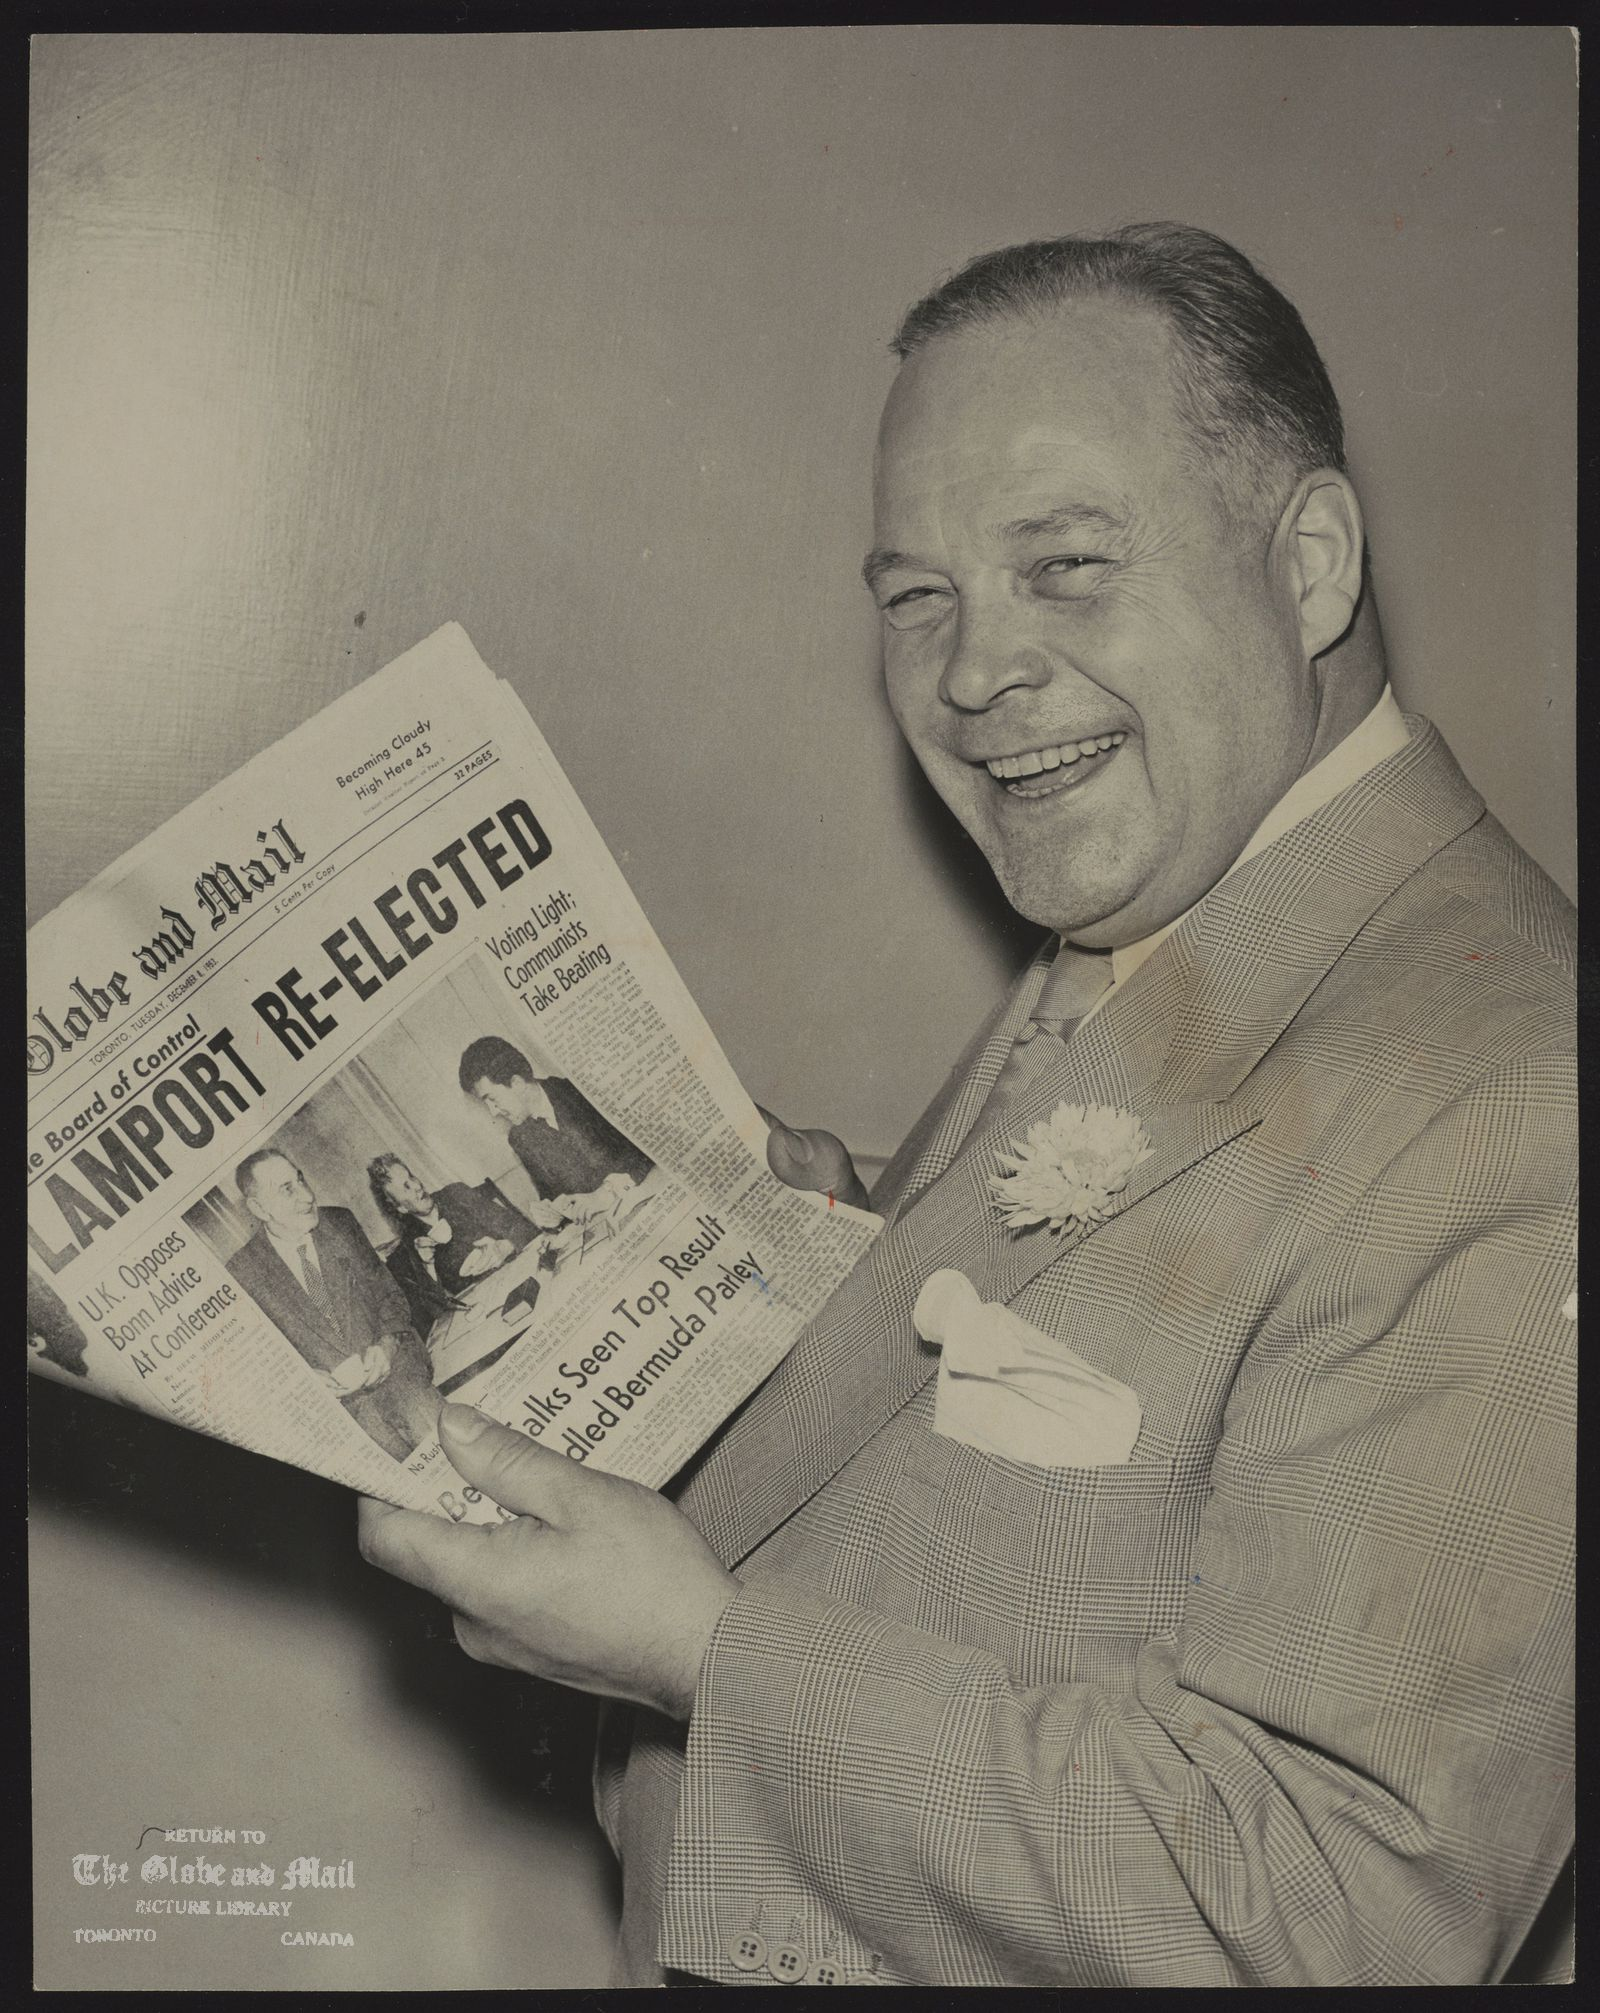 ALLAN LAMPORT Beaming happily despite a drastic cut in his margin of victory, Mayor Lamport reads The Globe And Mail headline telling of his election to third term. All but one member of Mayor Lamport's 1953 council were returned with him. Ald. Chambers had retired.